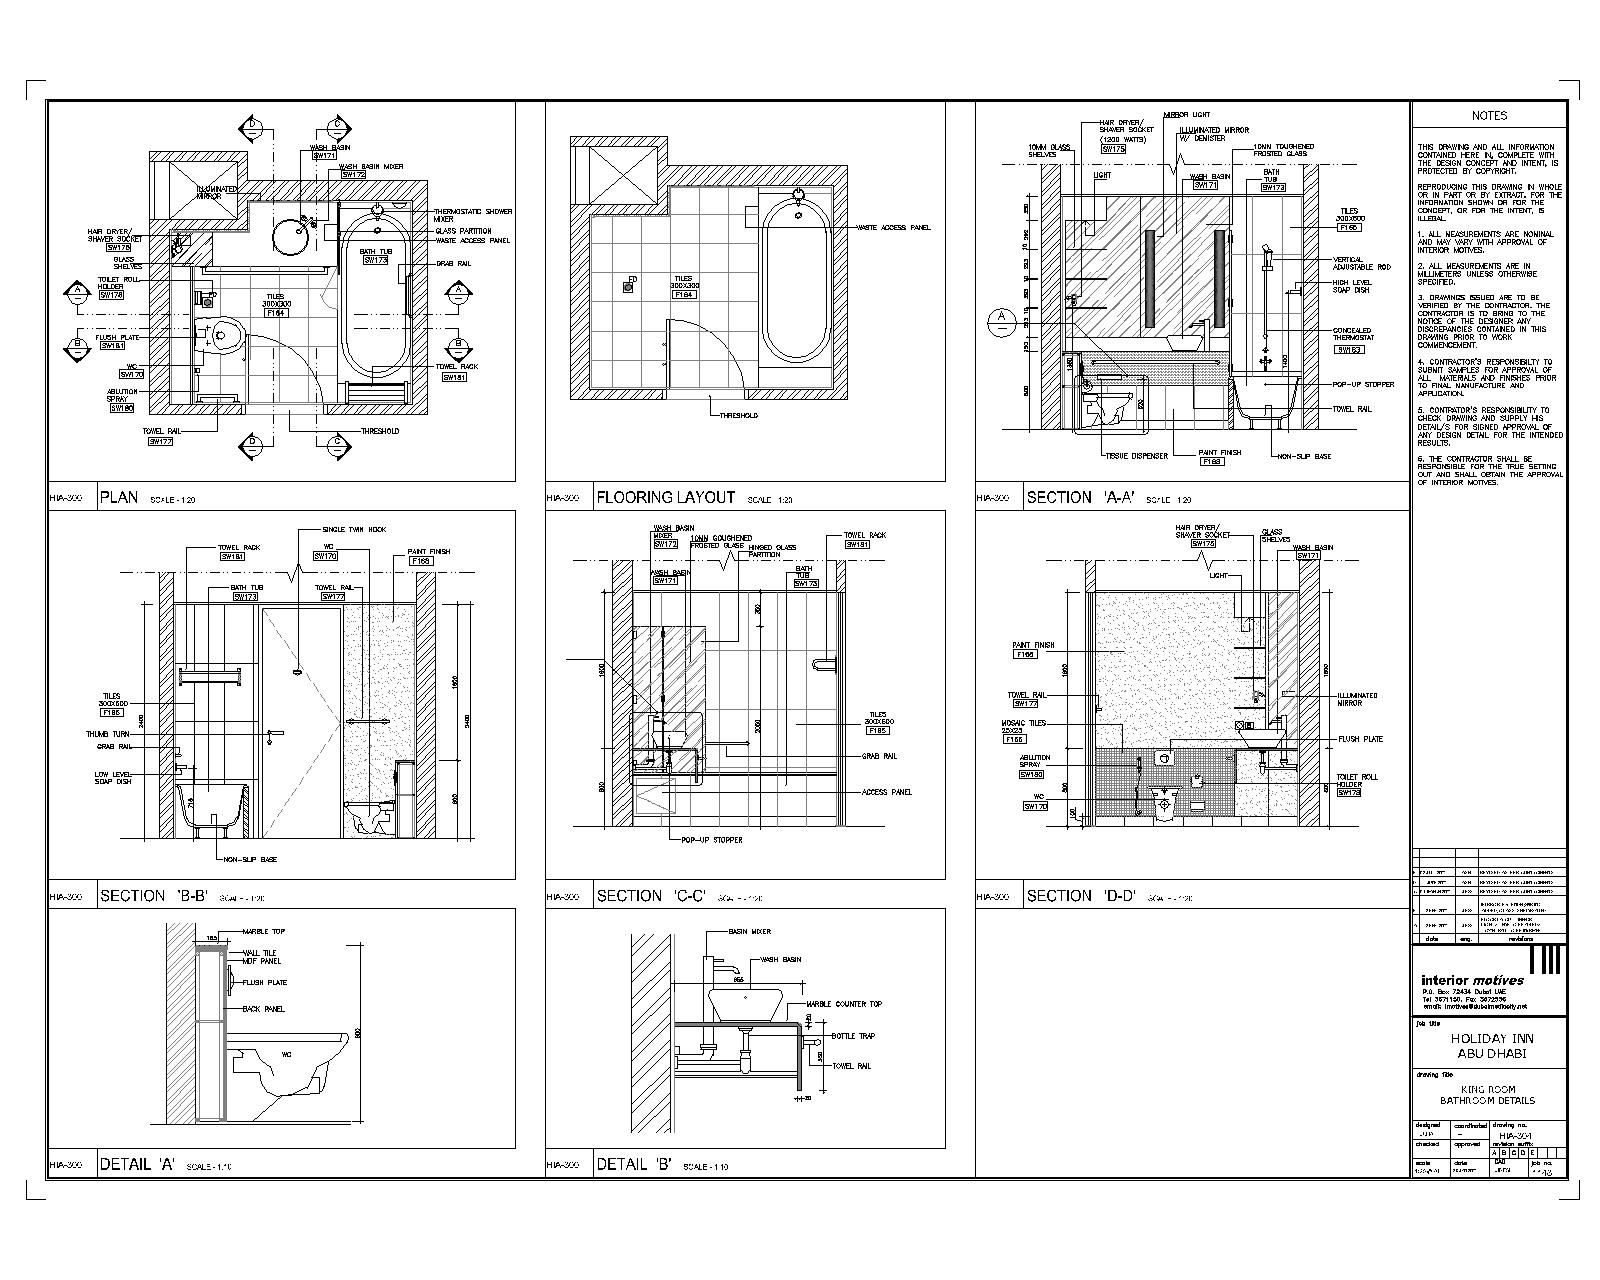 Autocad Drawings Detail By Ashik Ahammed At Coroflot Design Tips Guides Pinterest Autocad